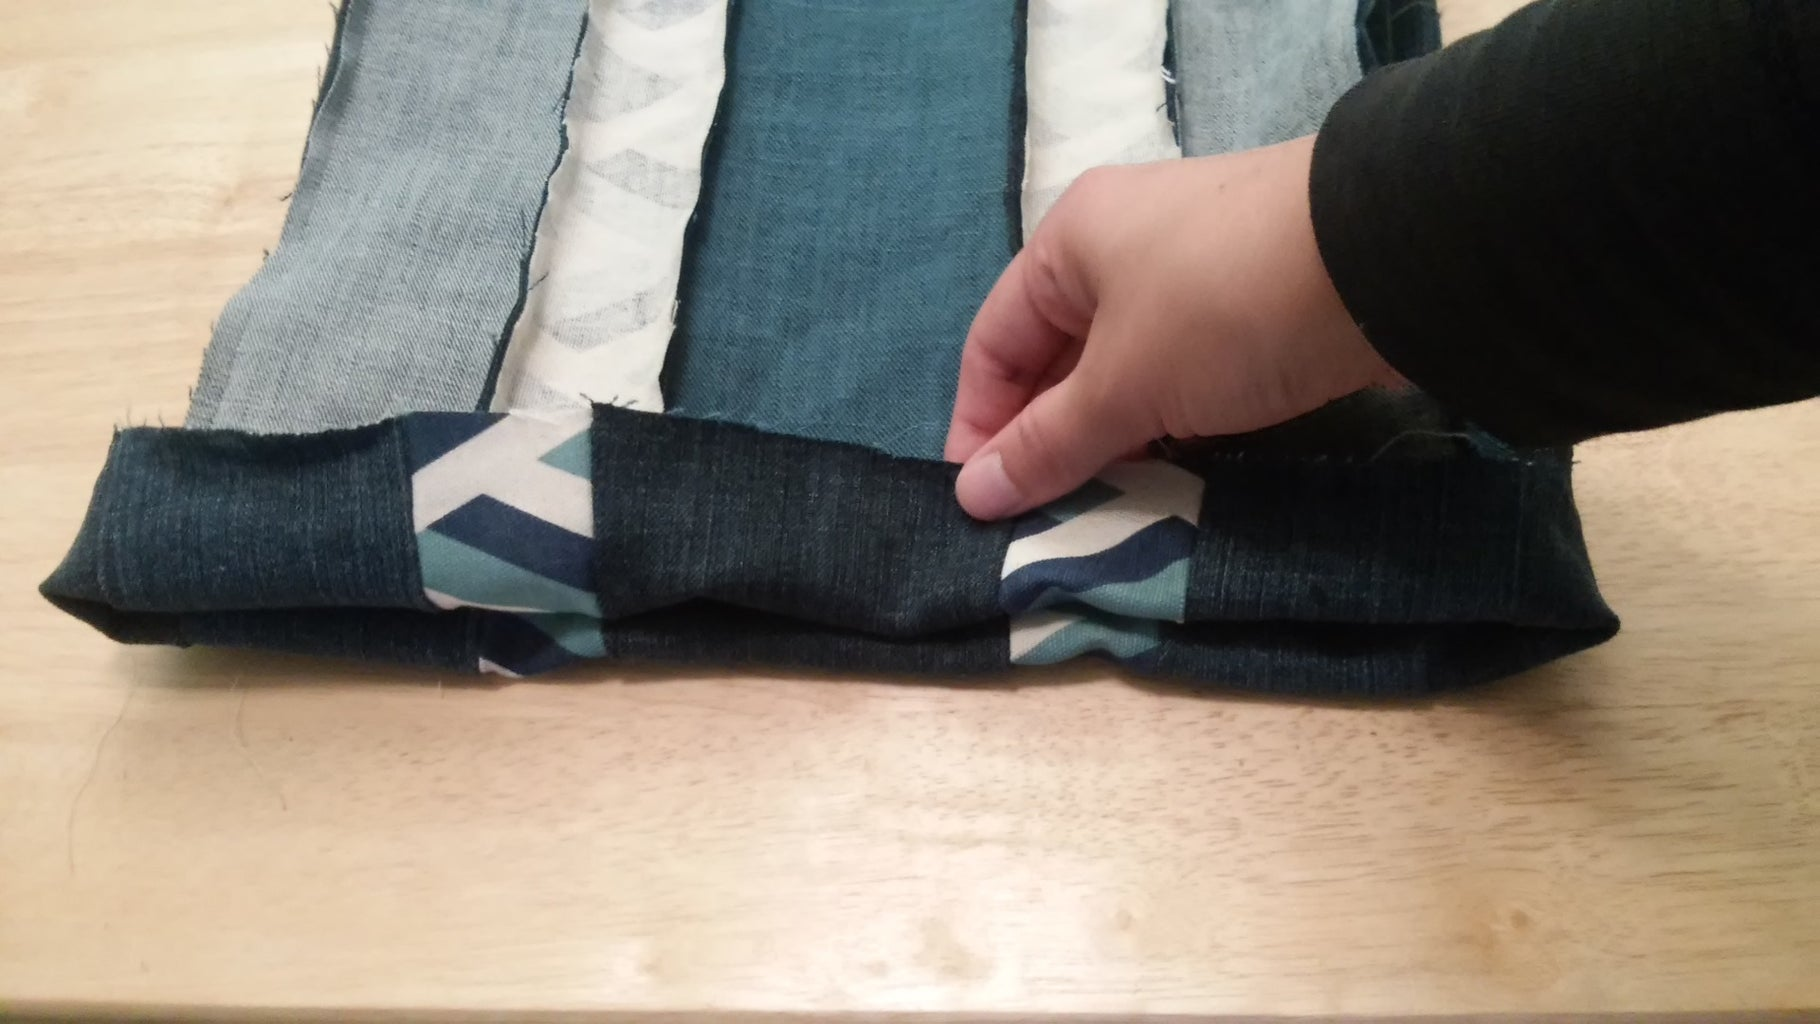 (more) Sewing!